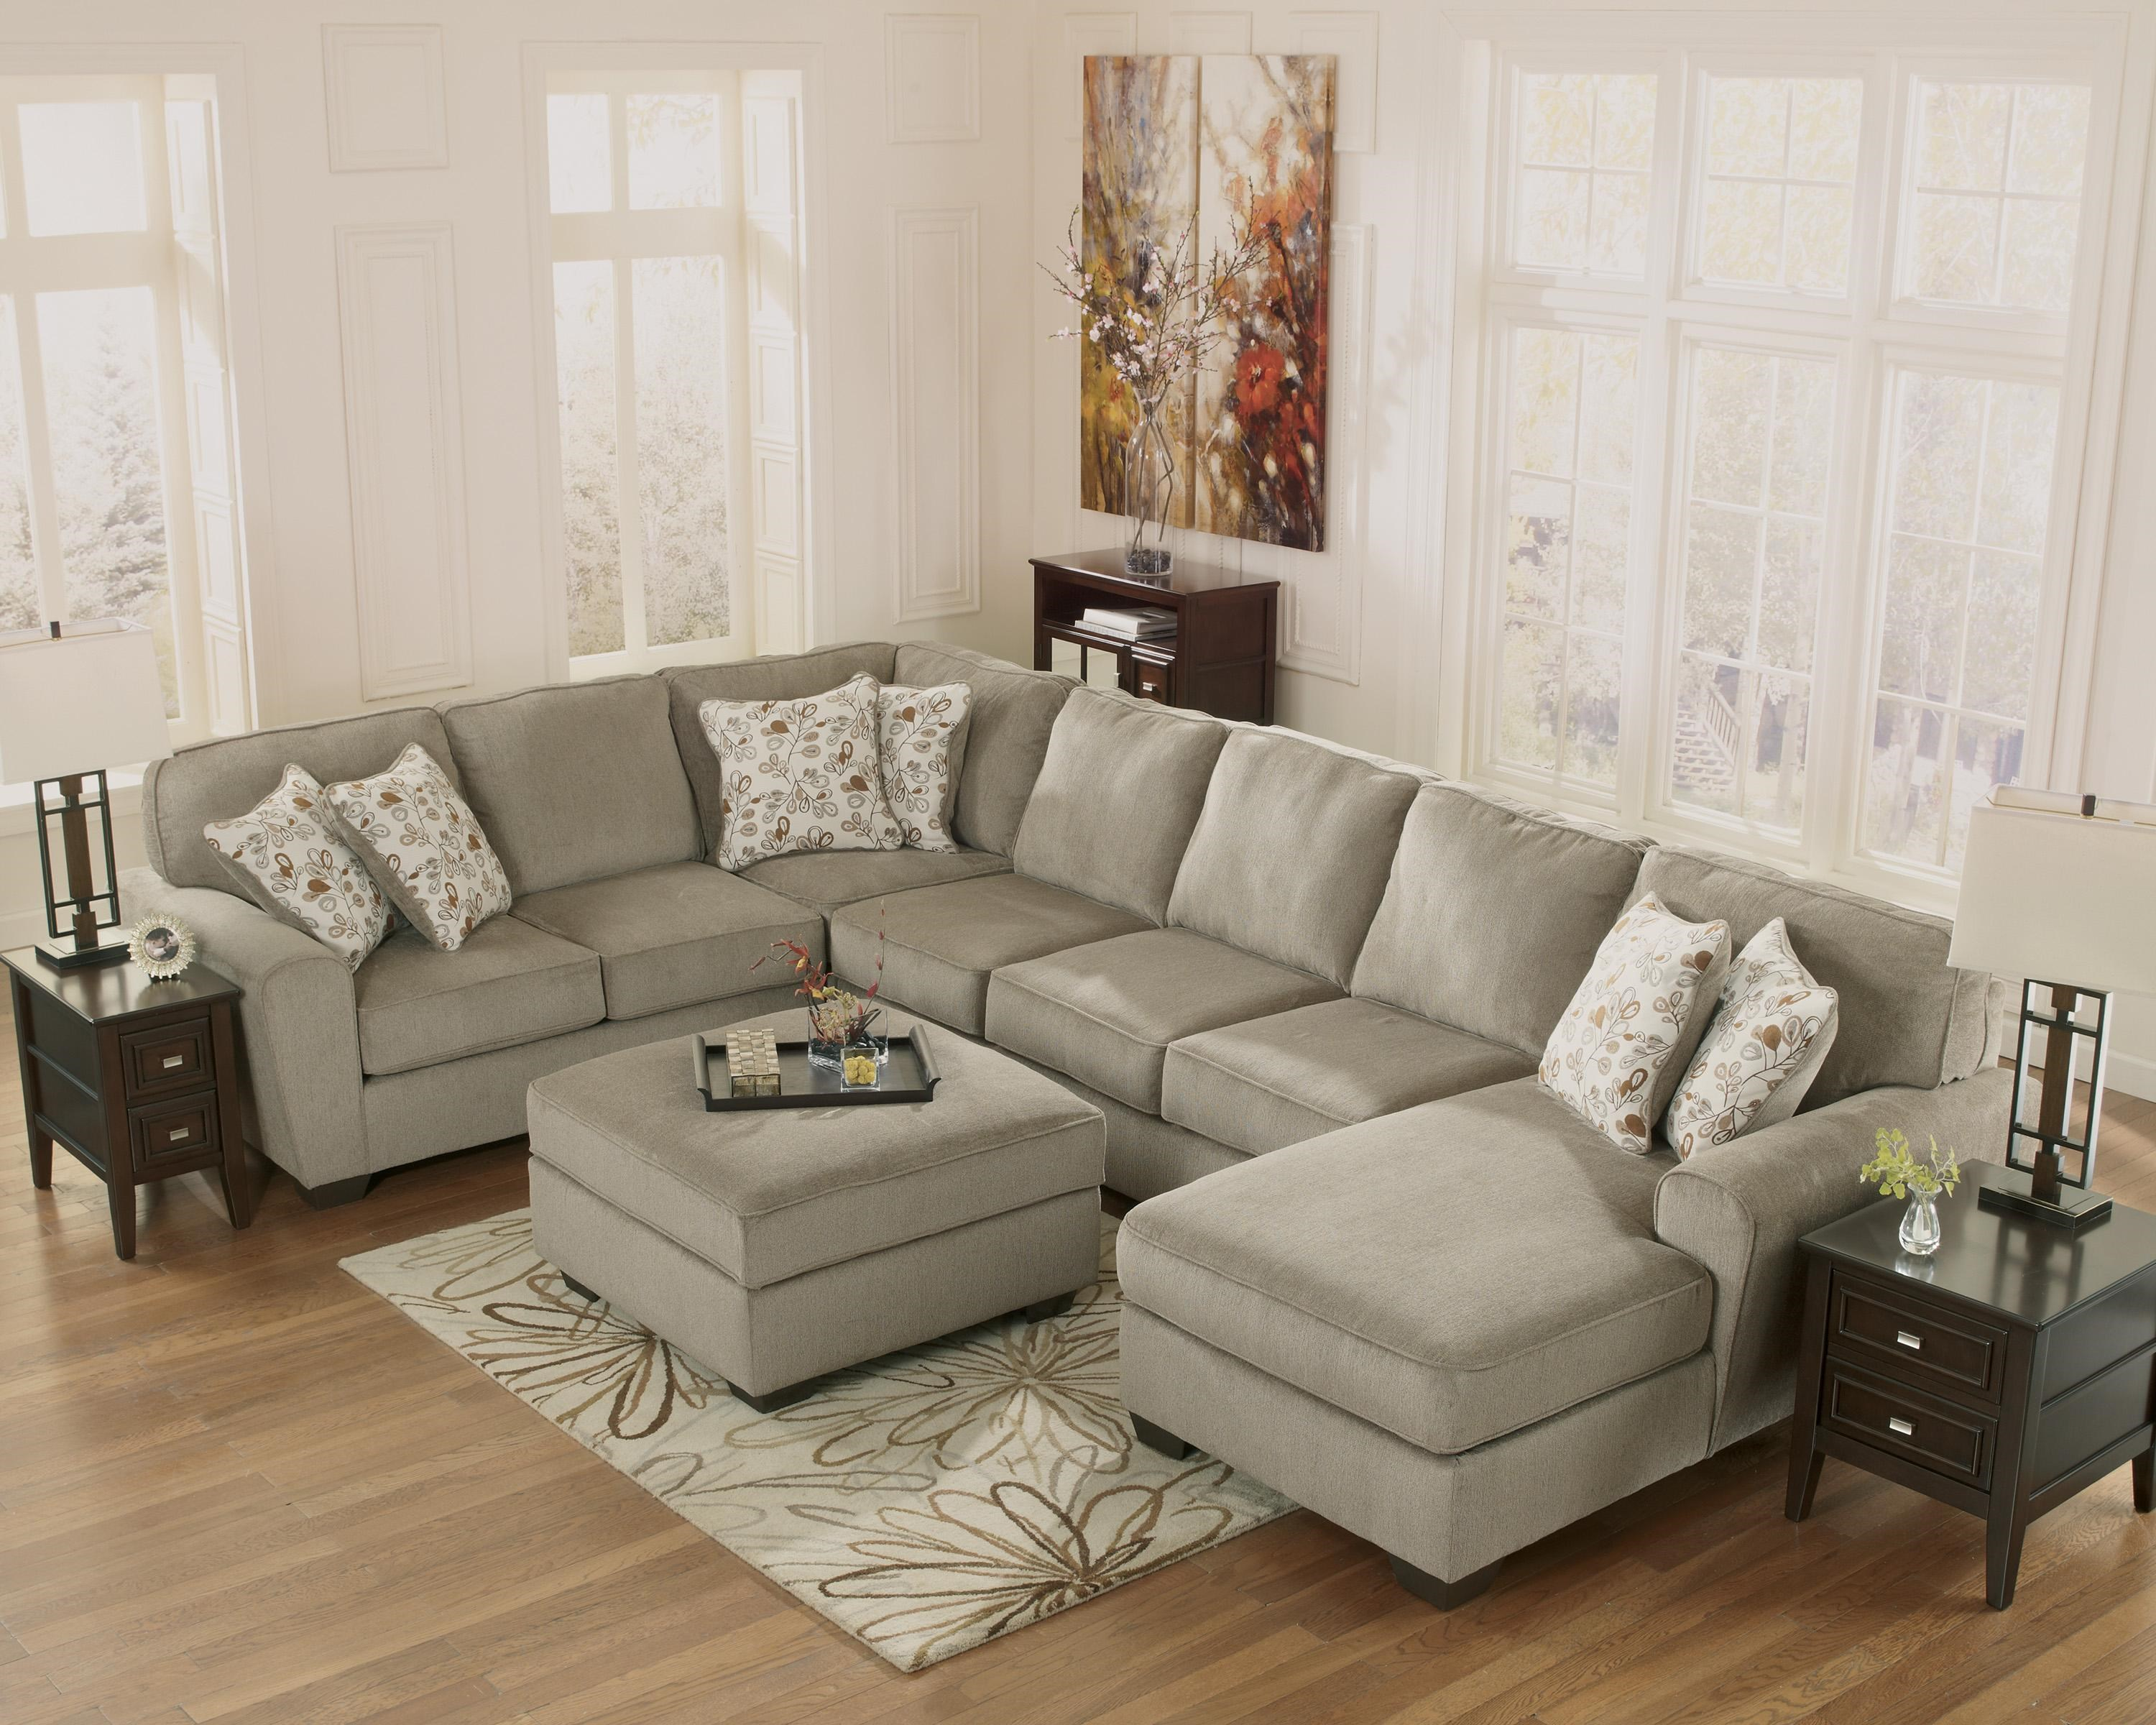 Ashley Furniture Patola Park   Patina 4 Piece Sectional With Right Chaise